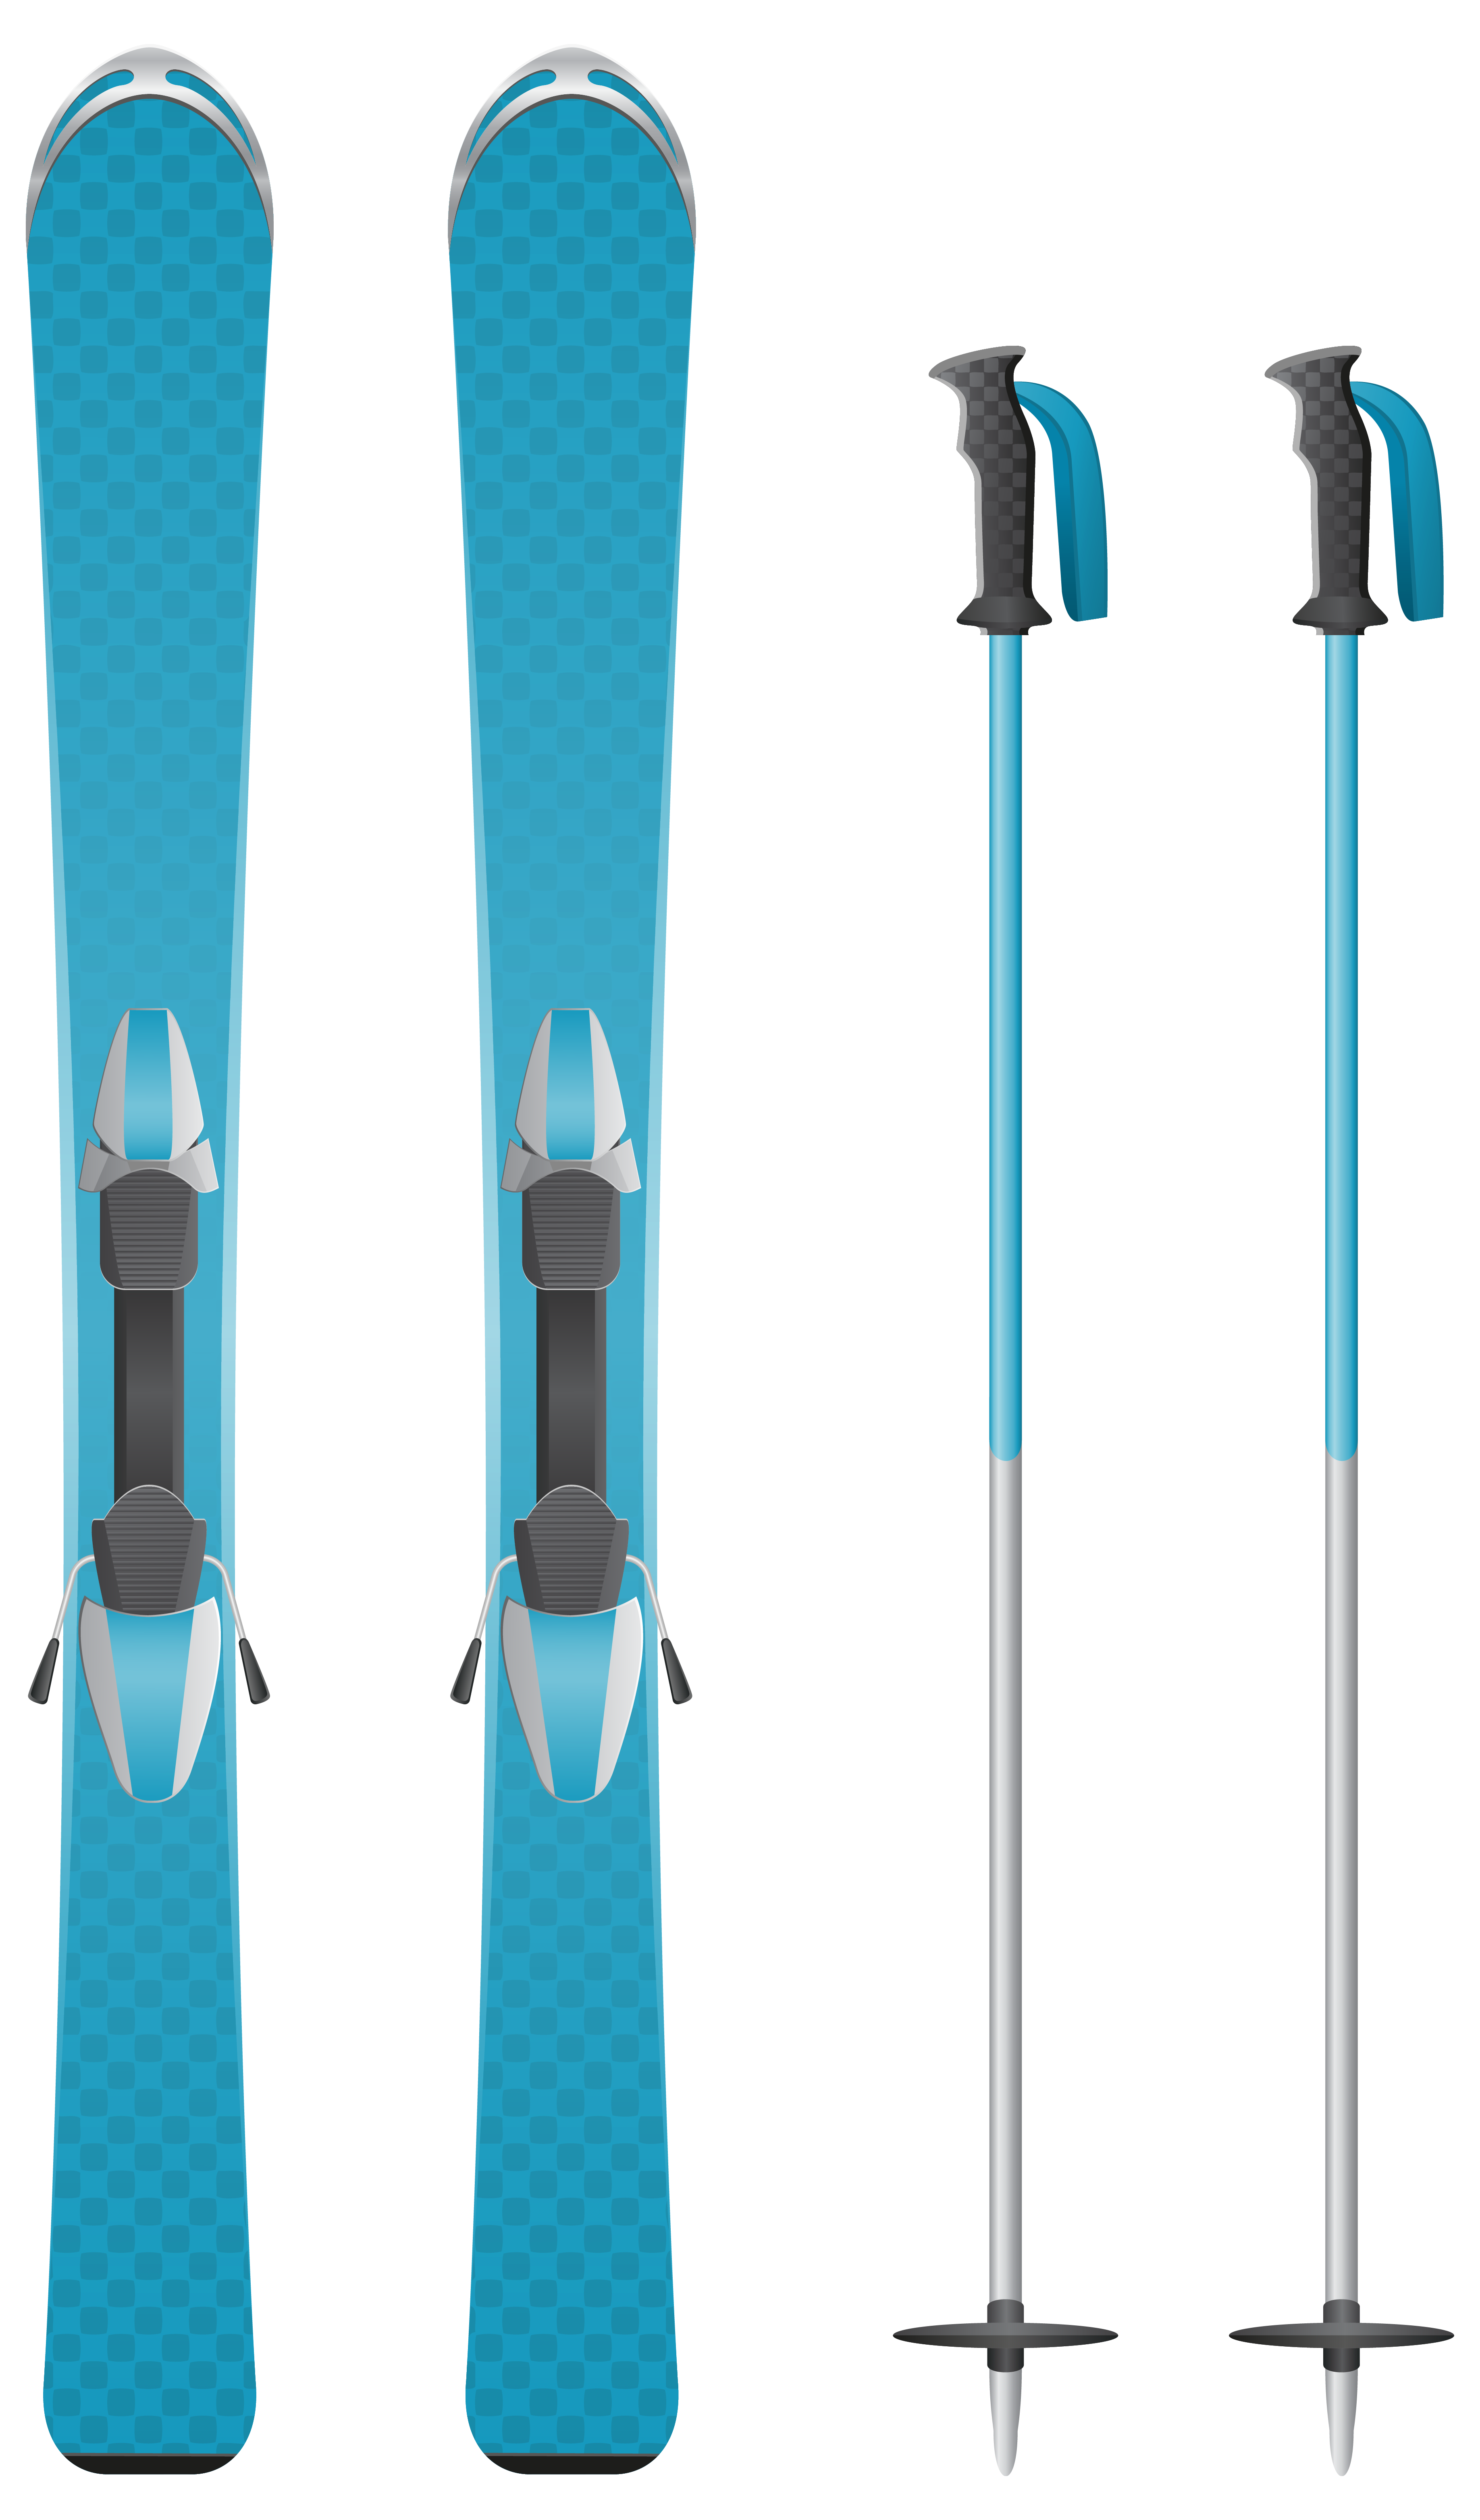 Blue Skis PNG Clipart Image | Gallery Yopriceville - High-Quality ... clip royalty free download